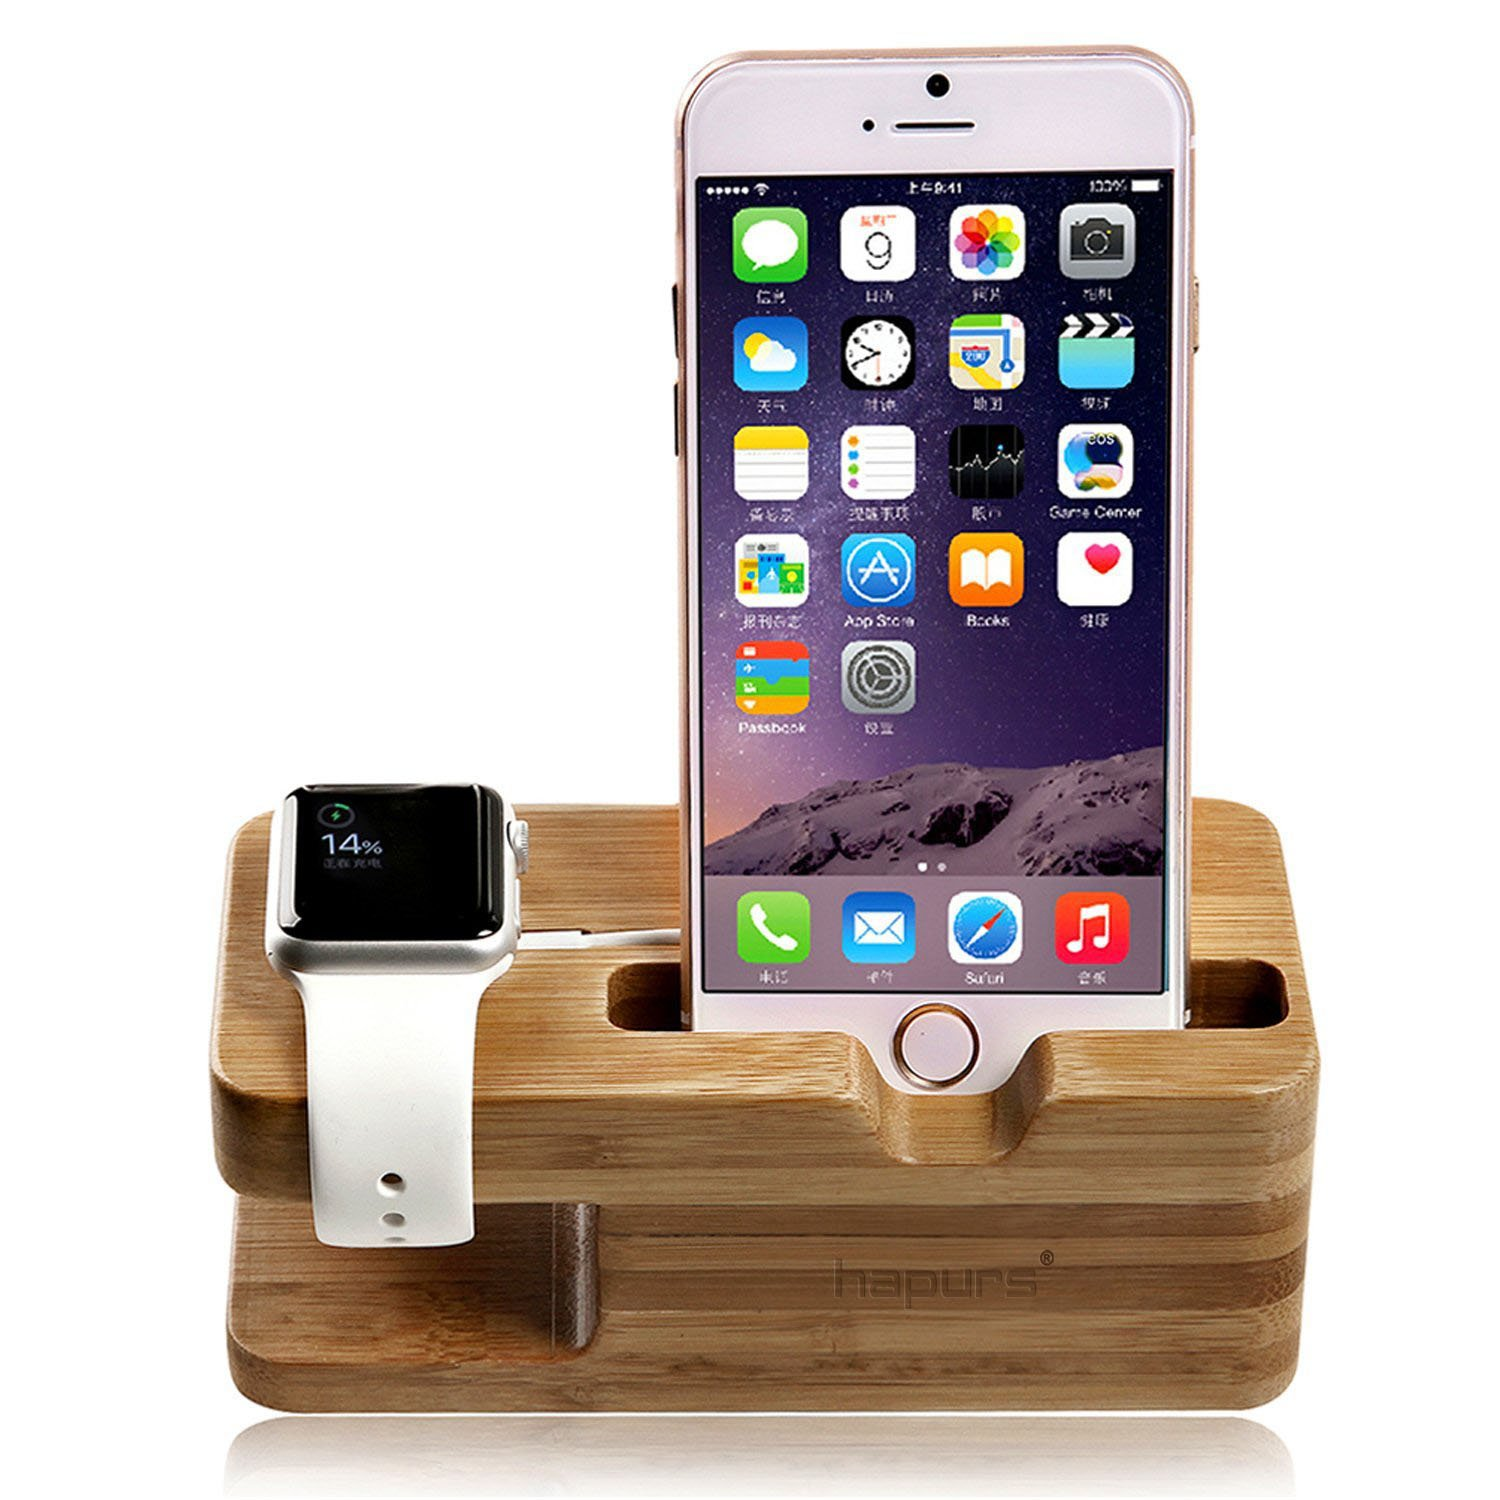 new arrival 9cc70 e483a Apple Watch Stand, Hapurs iWatch Bamboo Wood Charging Dock Charge Station  Stock Cradle Holder for Apple Watch Both 38mm and 42mm & iPhone 6 6 Plus 5S  ...